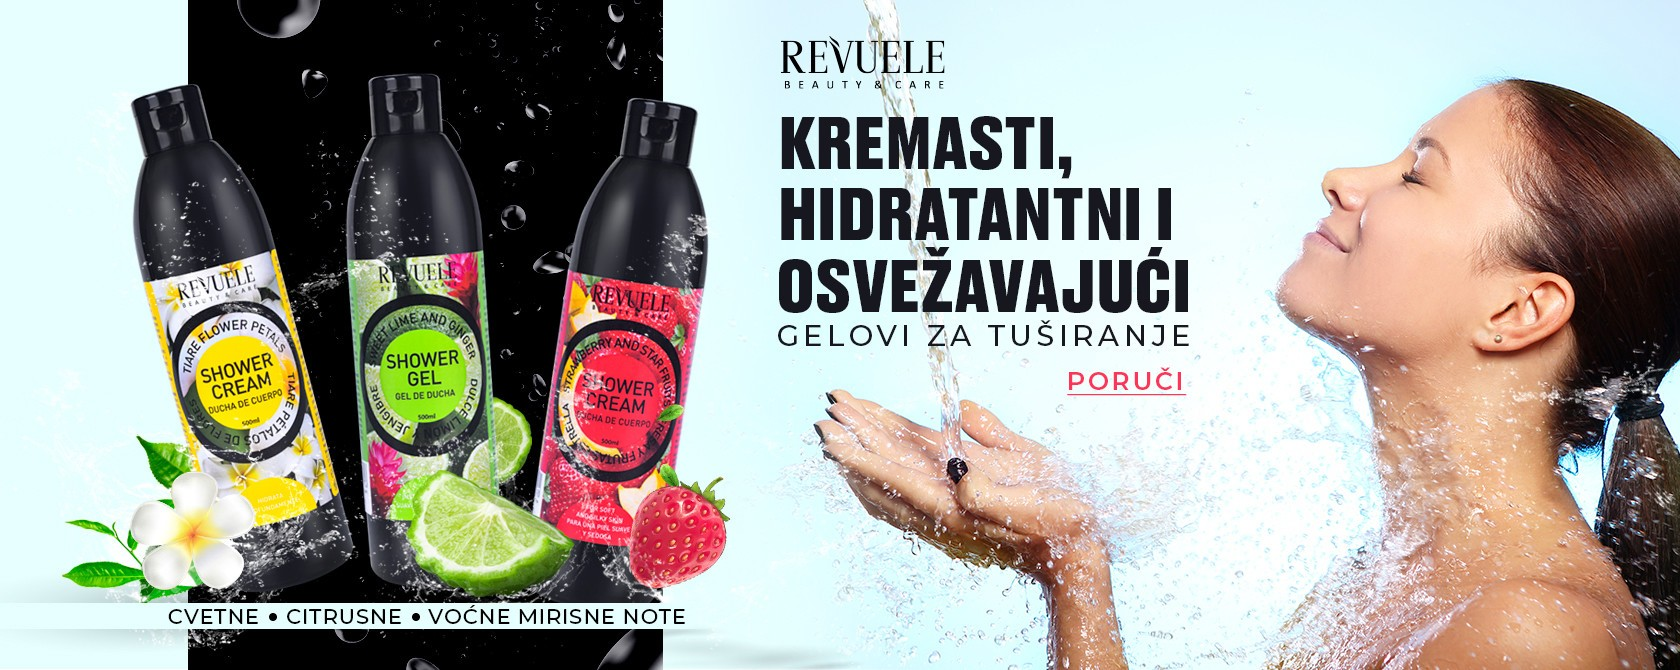 Ruvele shower gel